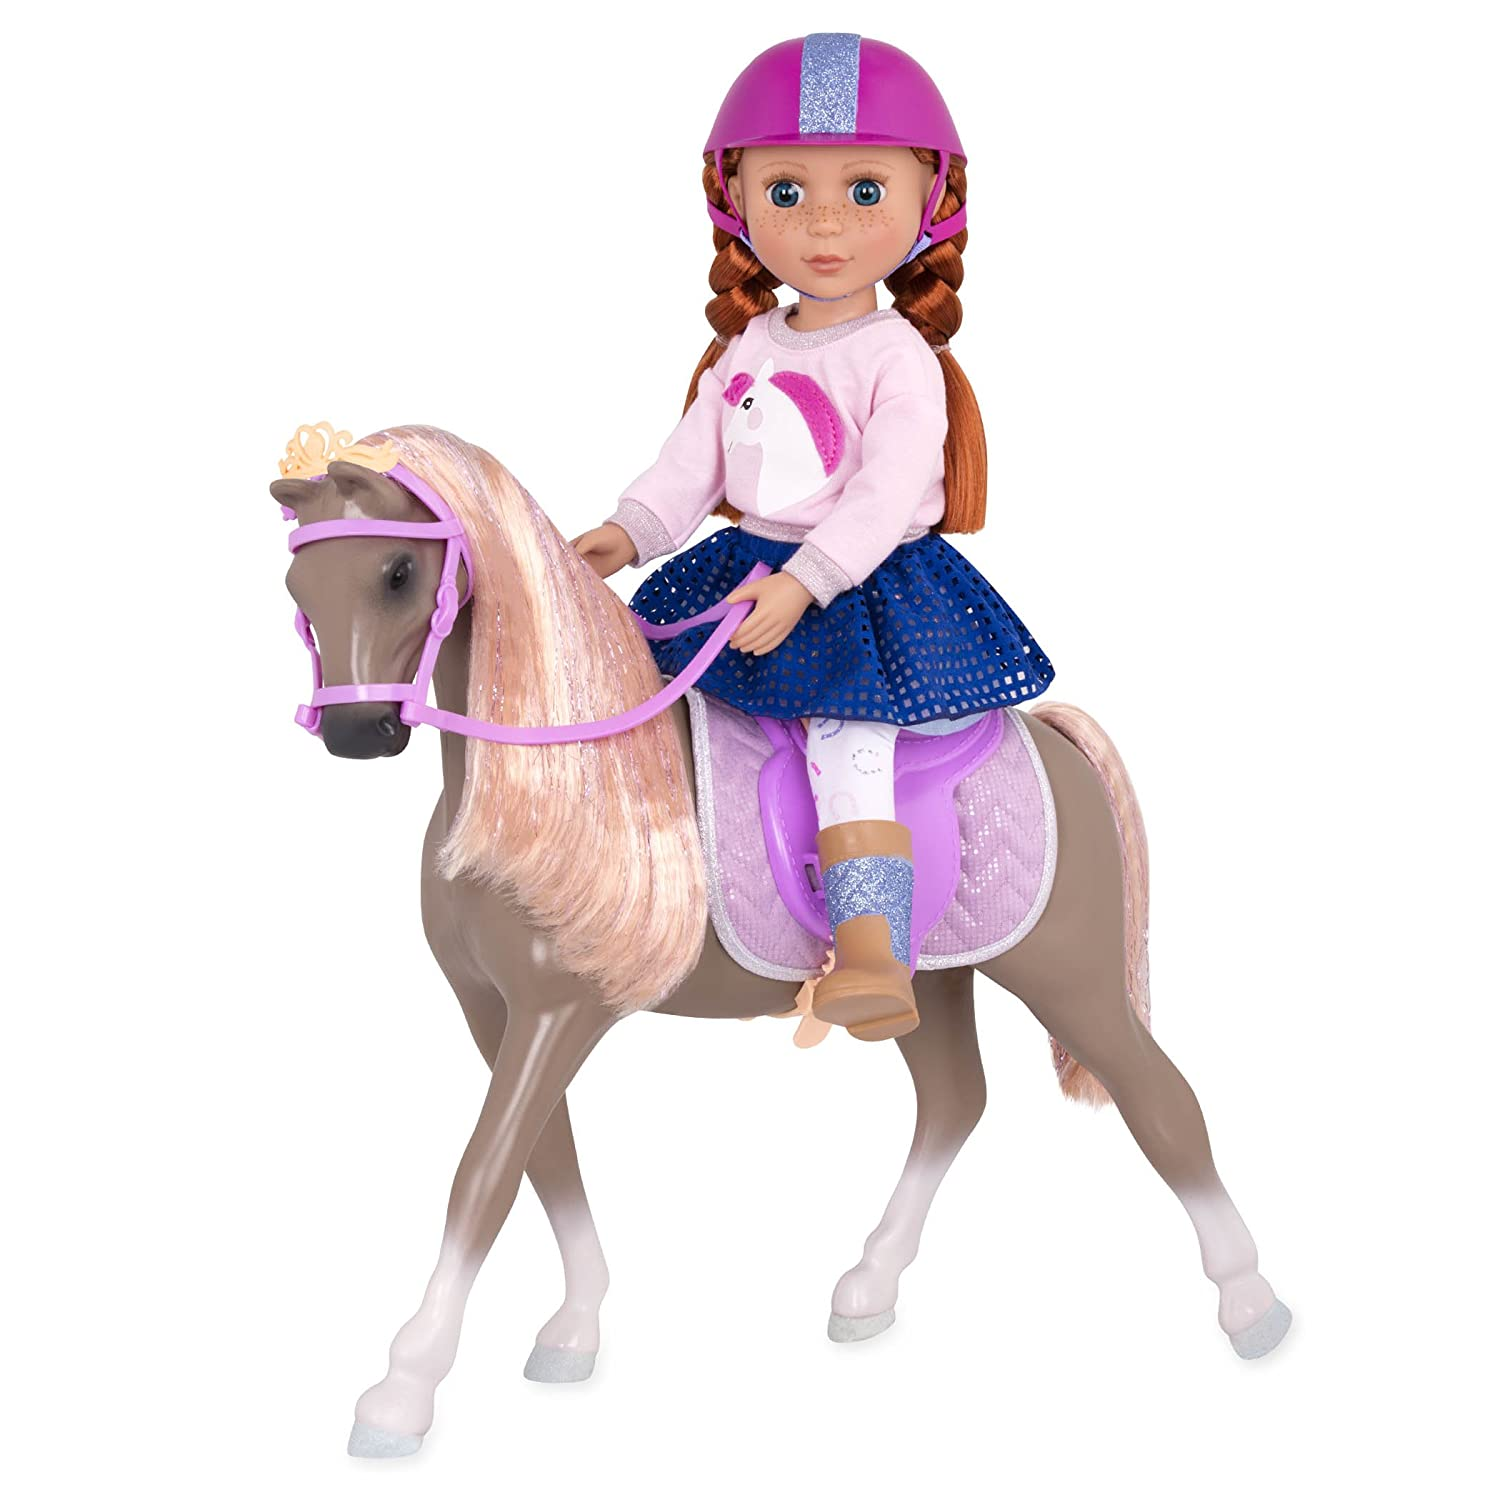 Amazon.com: Glitter Girls by Battat - Wanderlust 14-inch Toy Horse - Doll  Clothes and Accessories for Girls 3-Year-Old and Up: Toys & Games